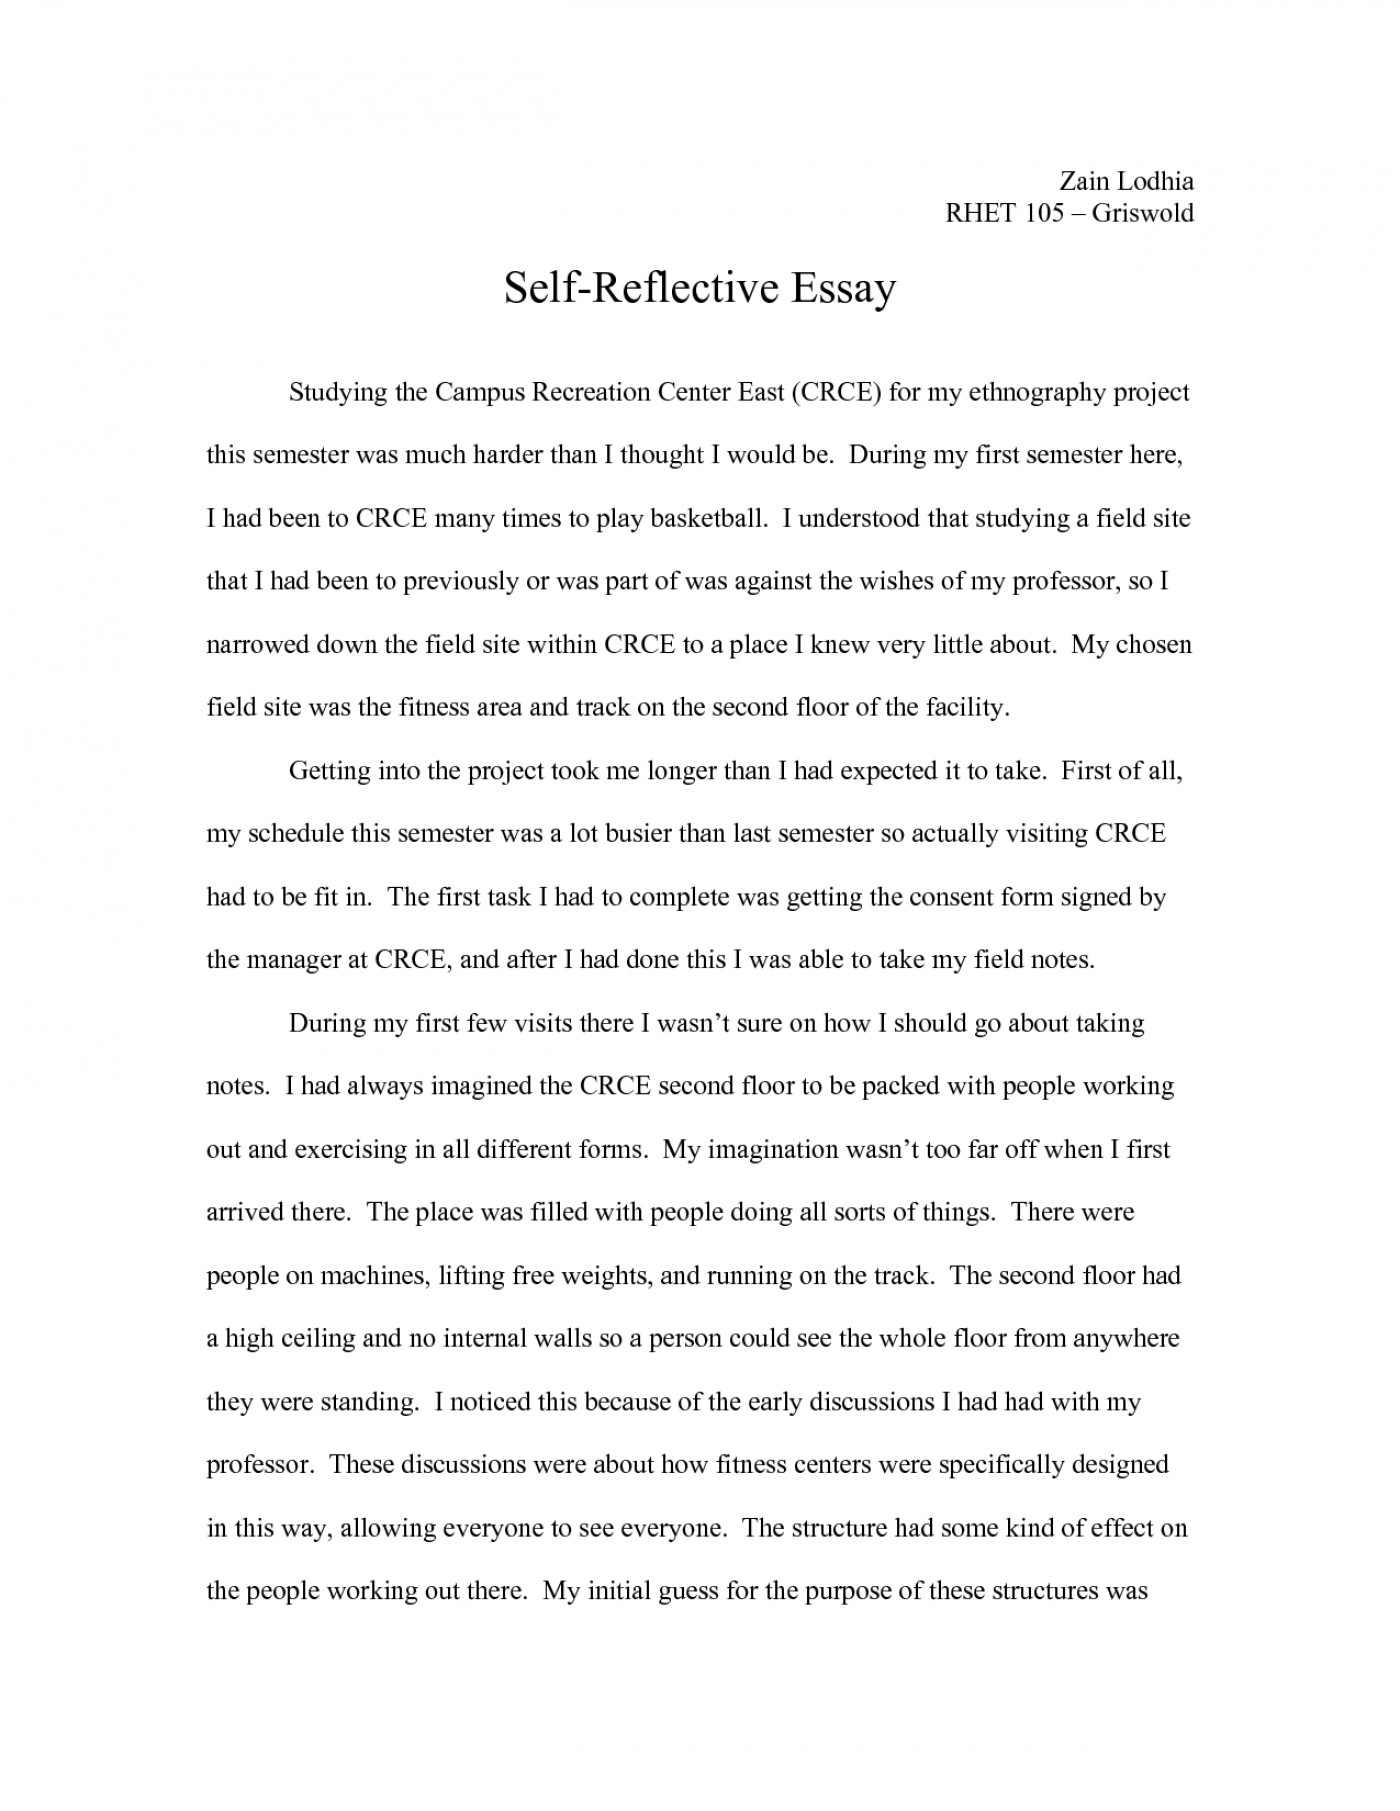 003 Reflective Essay Format Qal0pwnf46 Phenomenal Self Assessment Example Reflection Paper Apa 1400